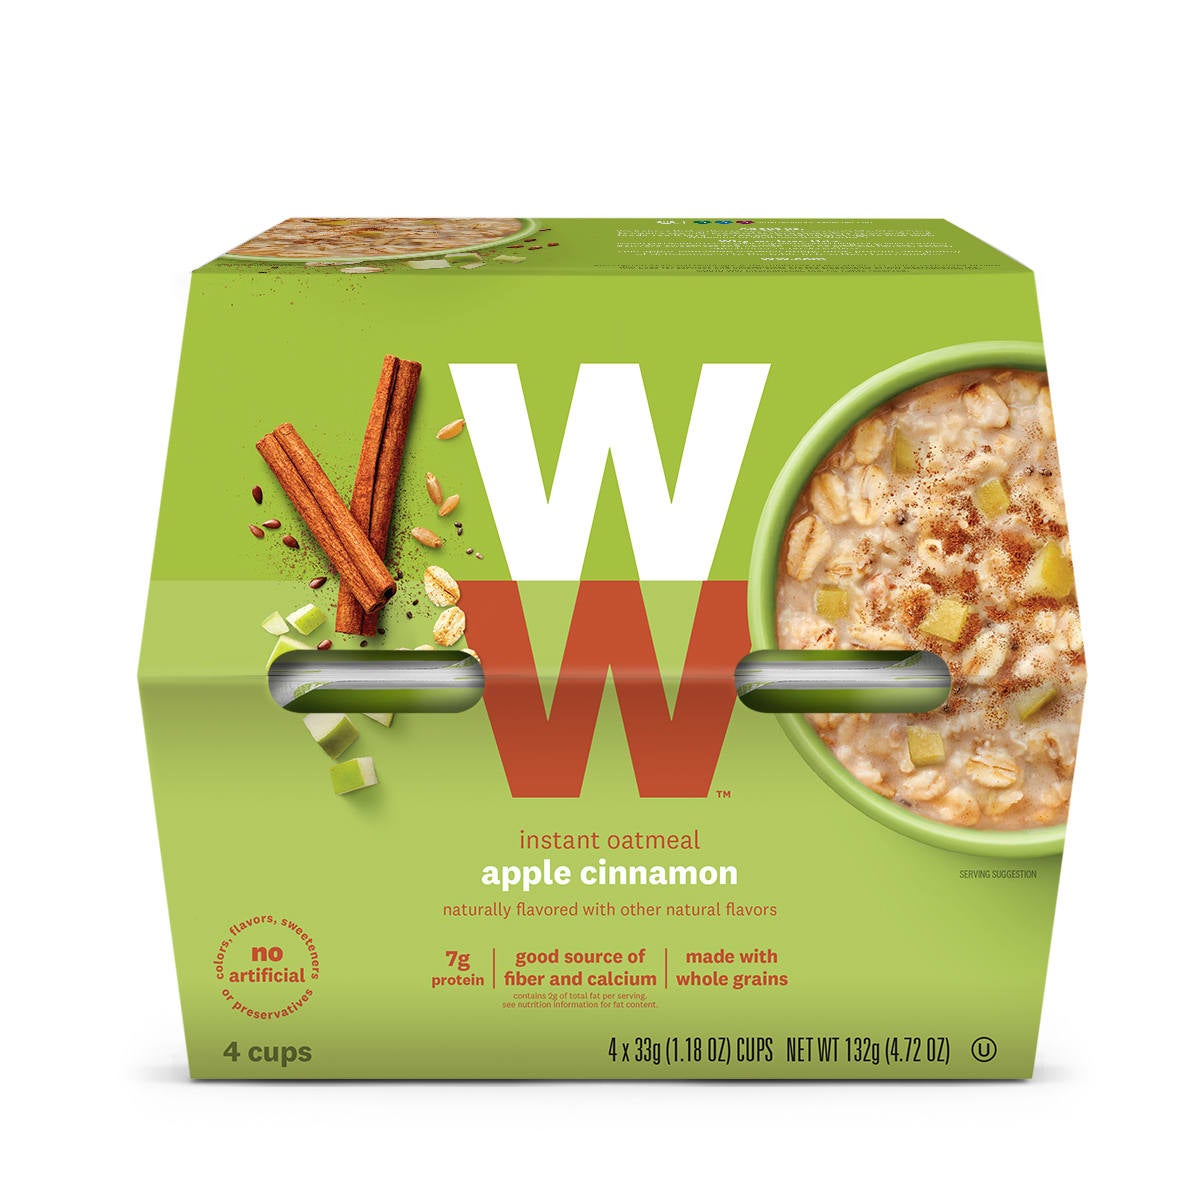 Apple Cinnamon Oatmeal, front of box, 4 cups, 7g of protein, good source of fiber and calcium, made with whole grains